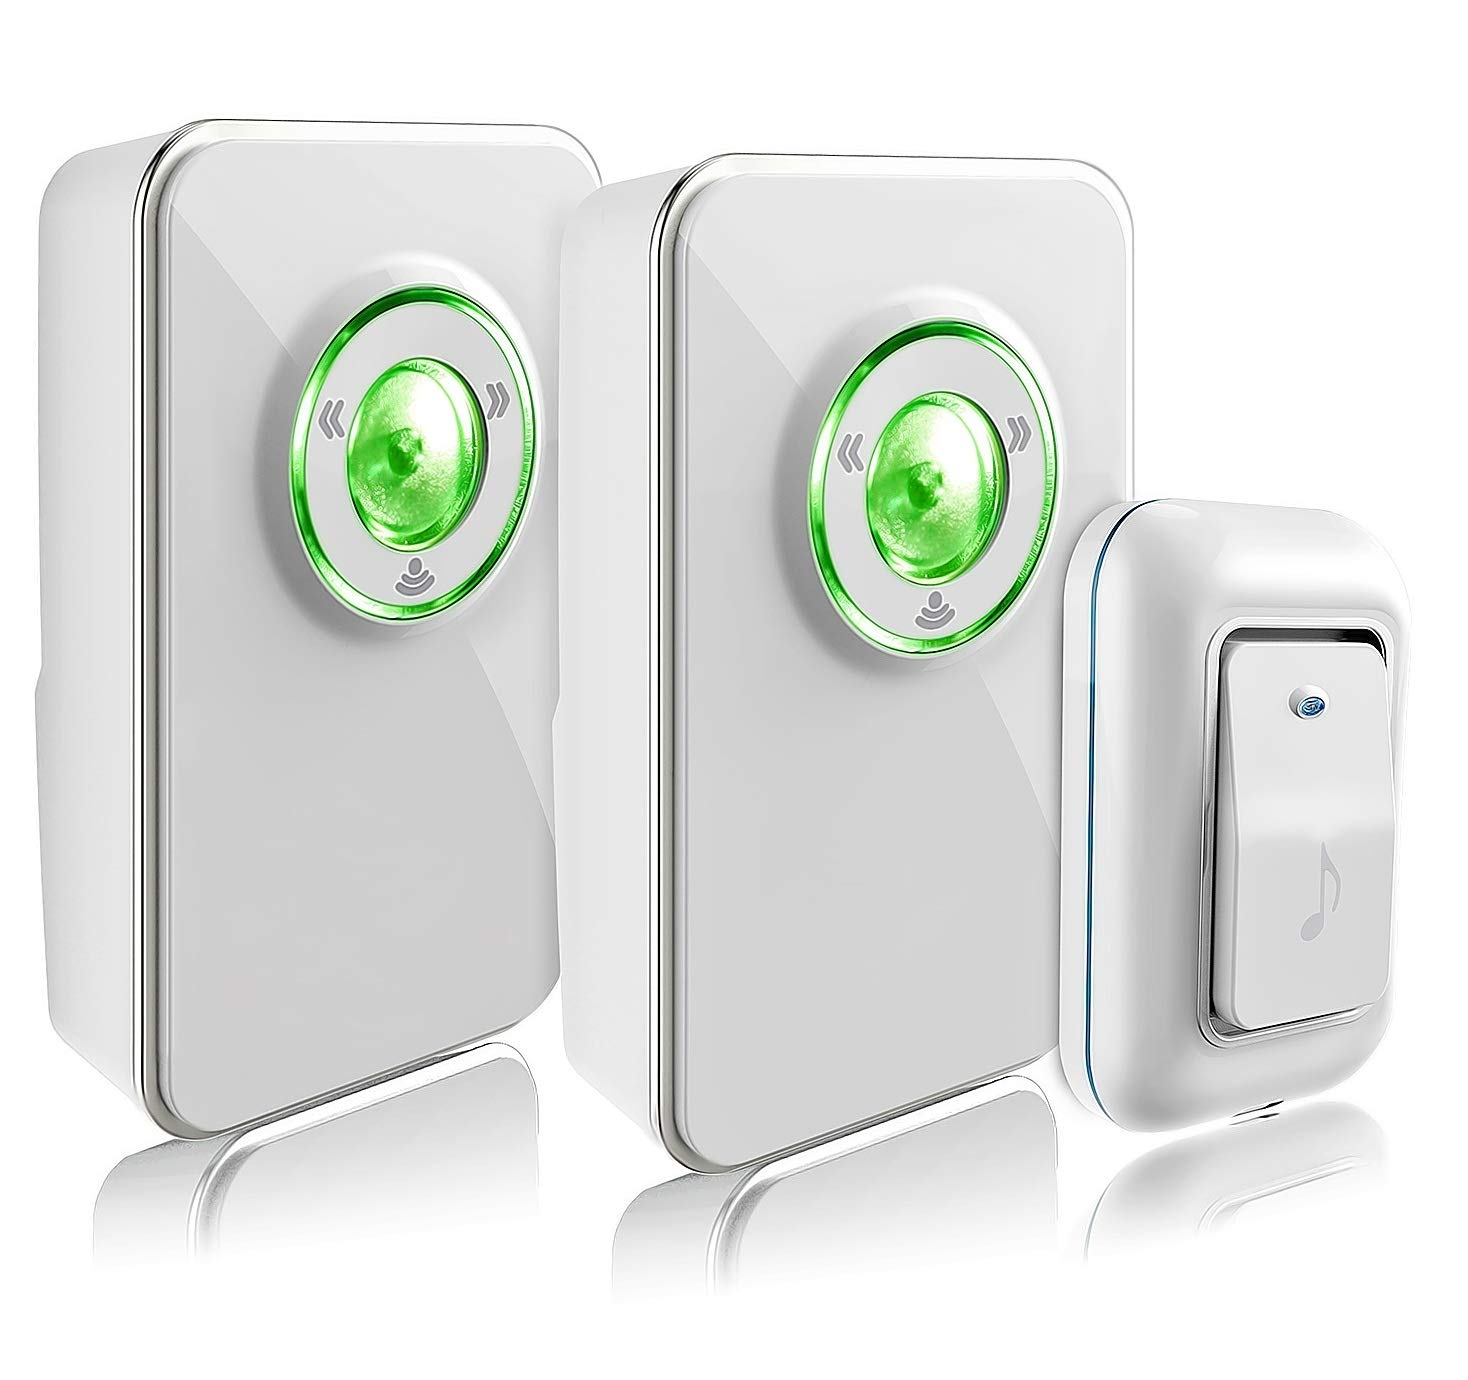 Wireless Doorbell Kit with 2 Receivers and 1 Remote Push Button Operating at 1000 Ft with 36 Chimes 3 Level Volume Green Strobe Light White Two Receivers